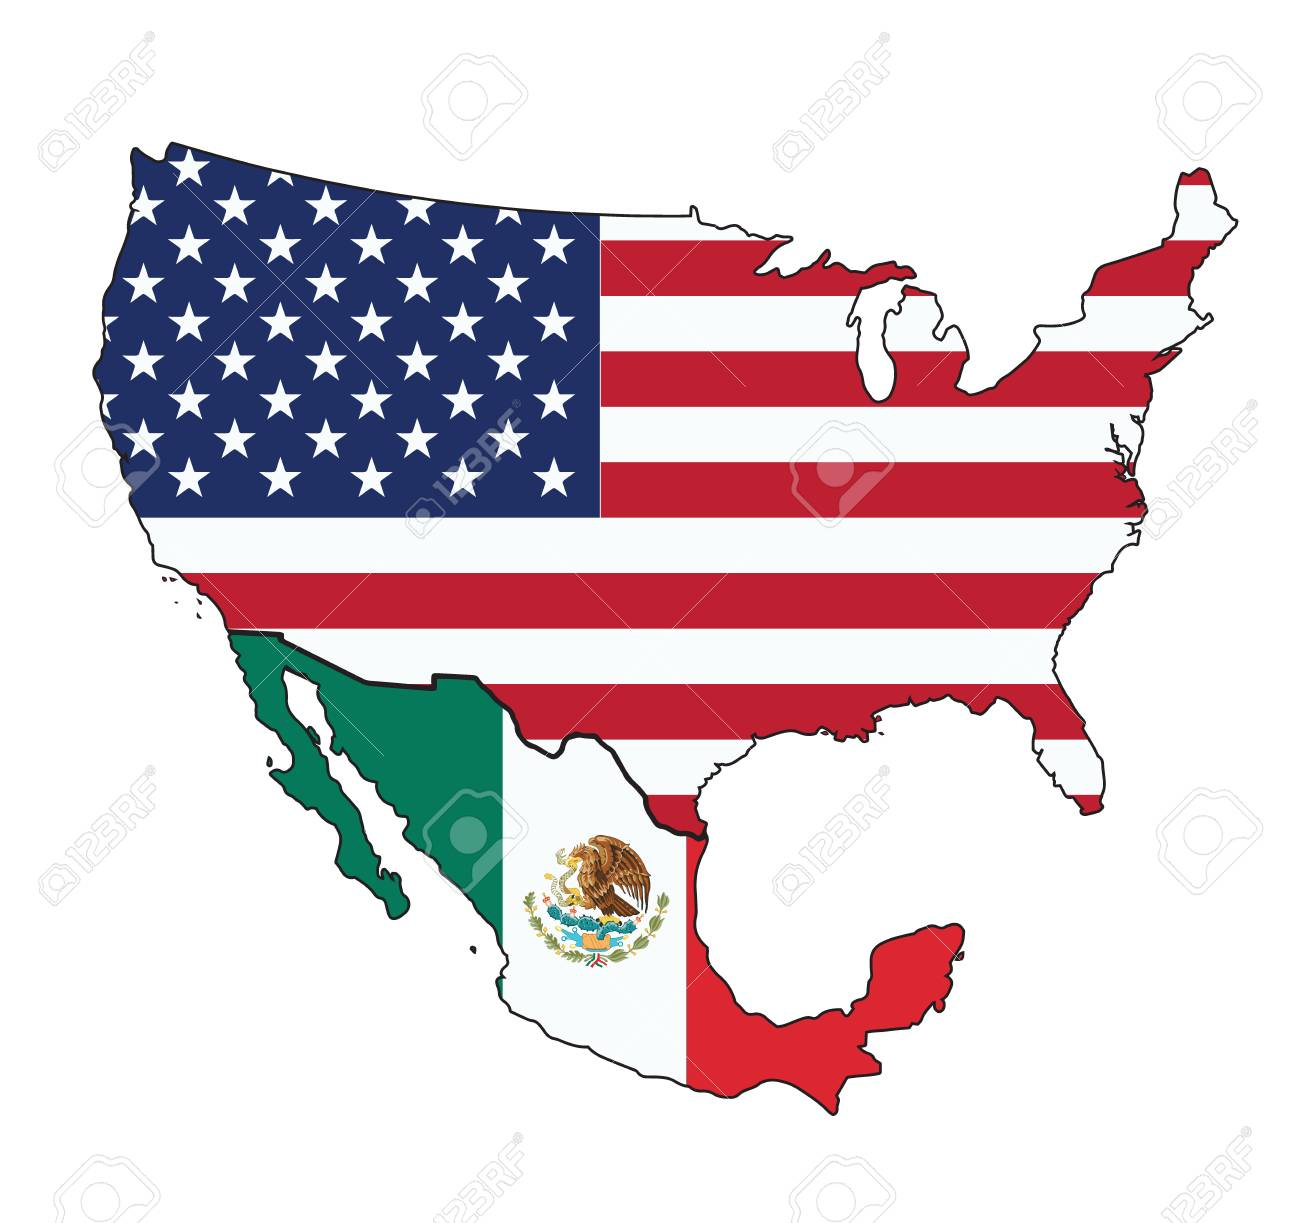 Map Of Usa And Mexico Vector Royalty Free Cliparts Vectors And